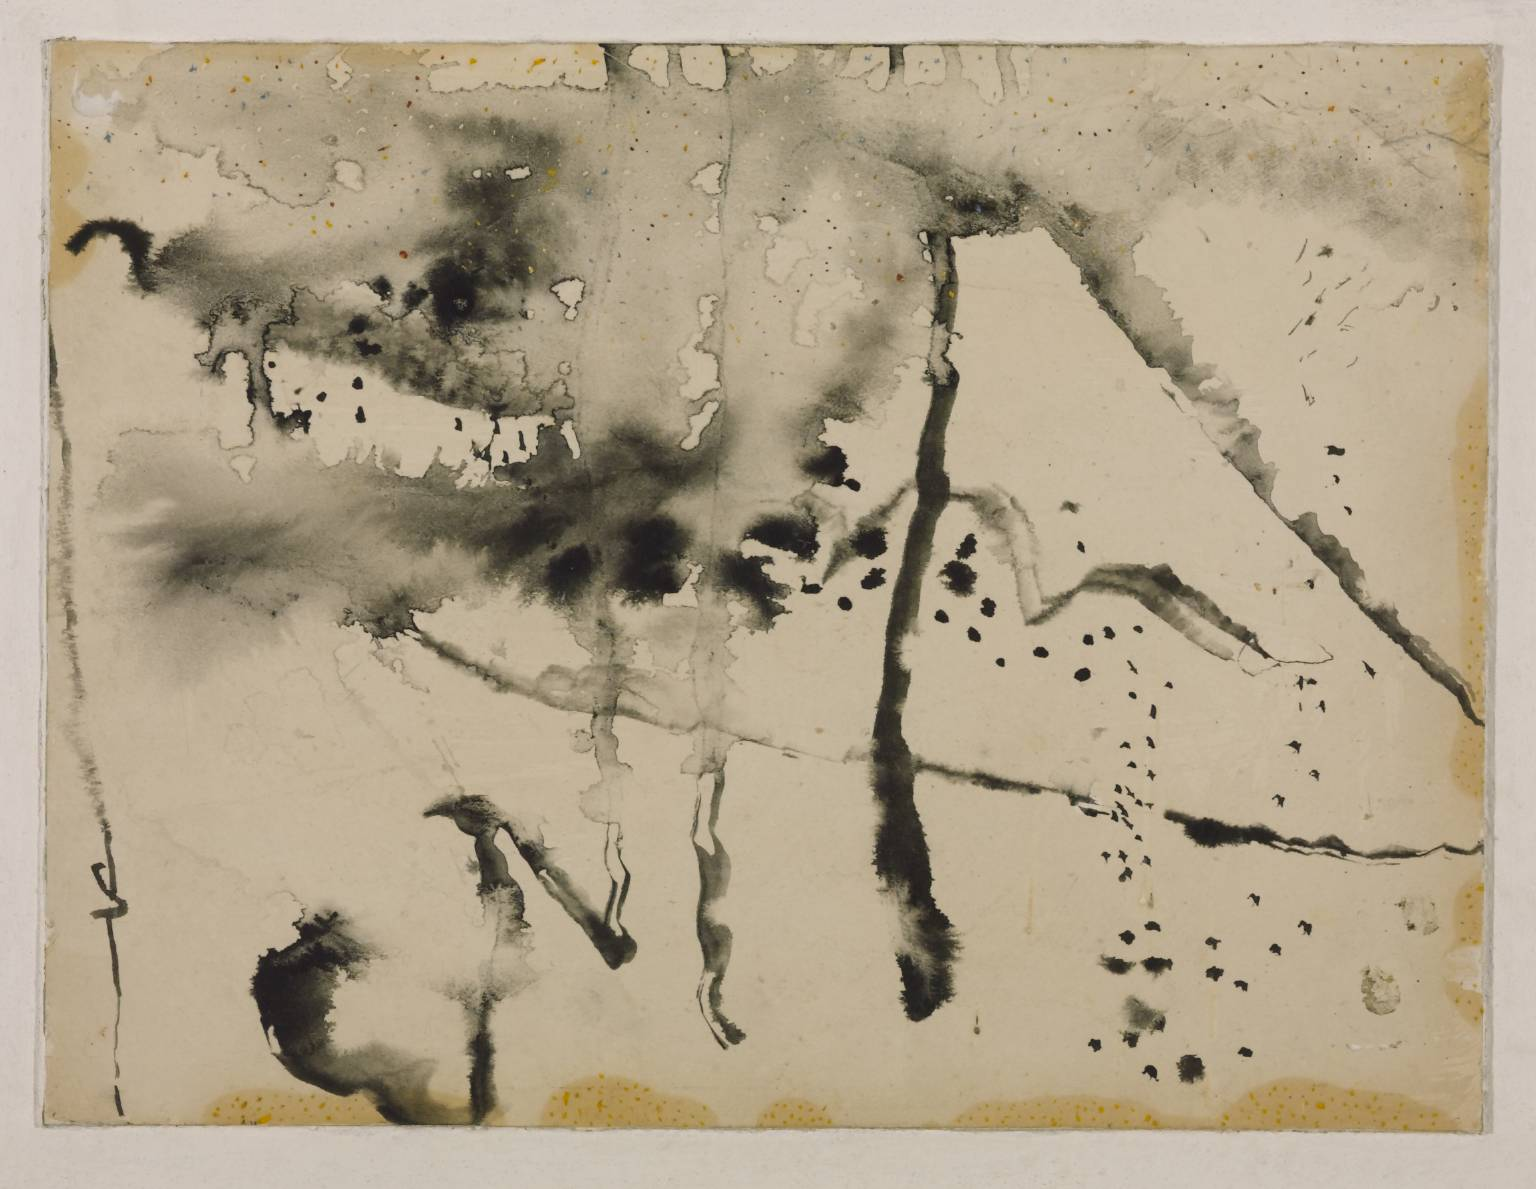 Composition Juviem, 1959